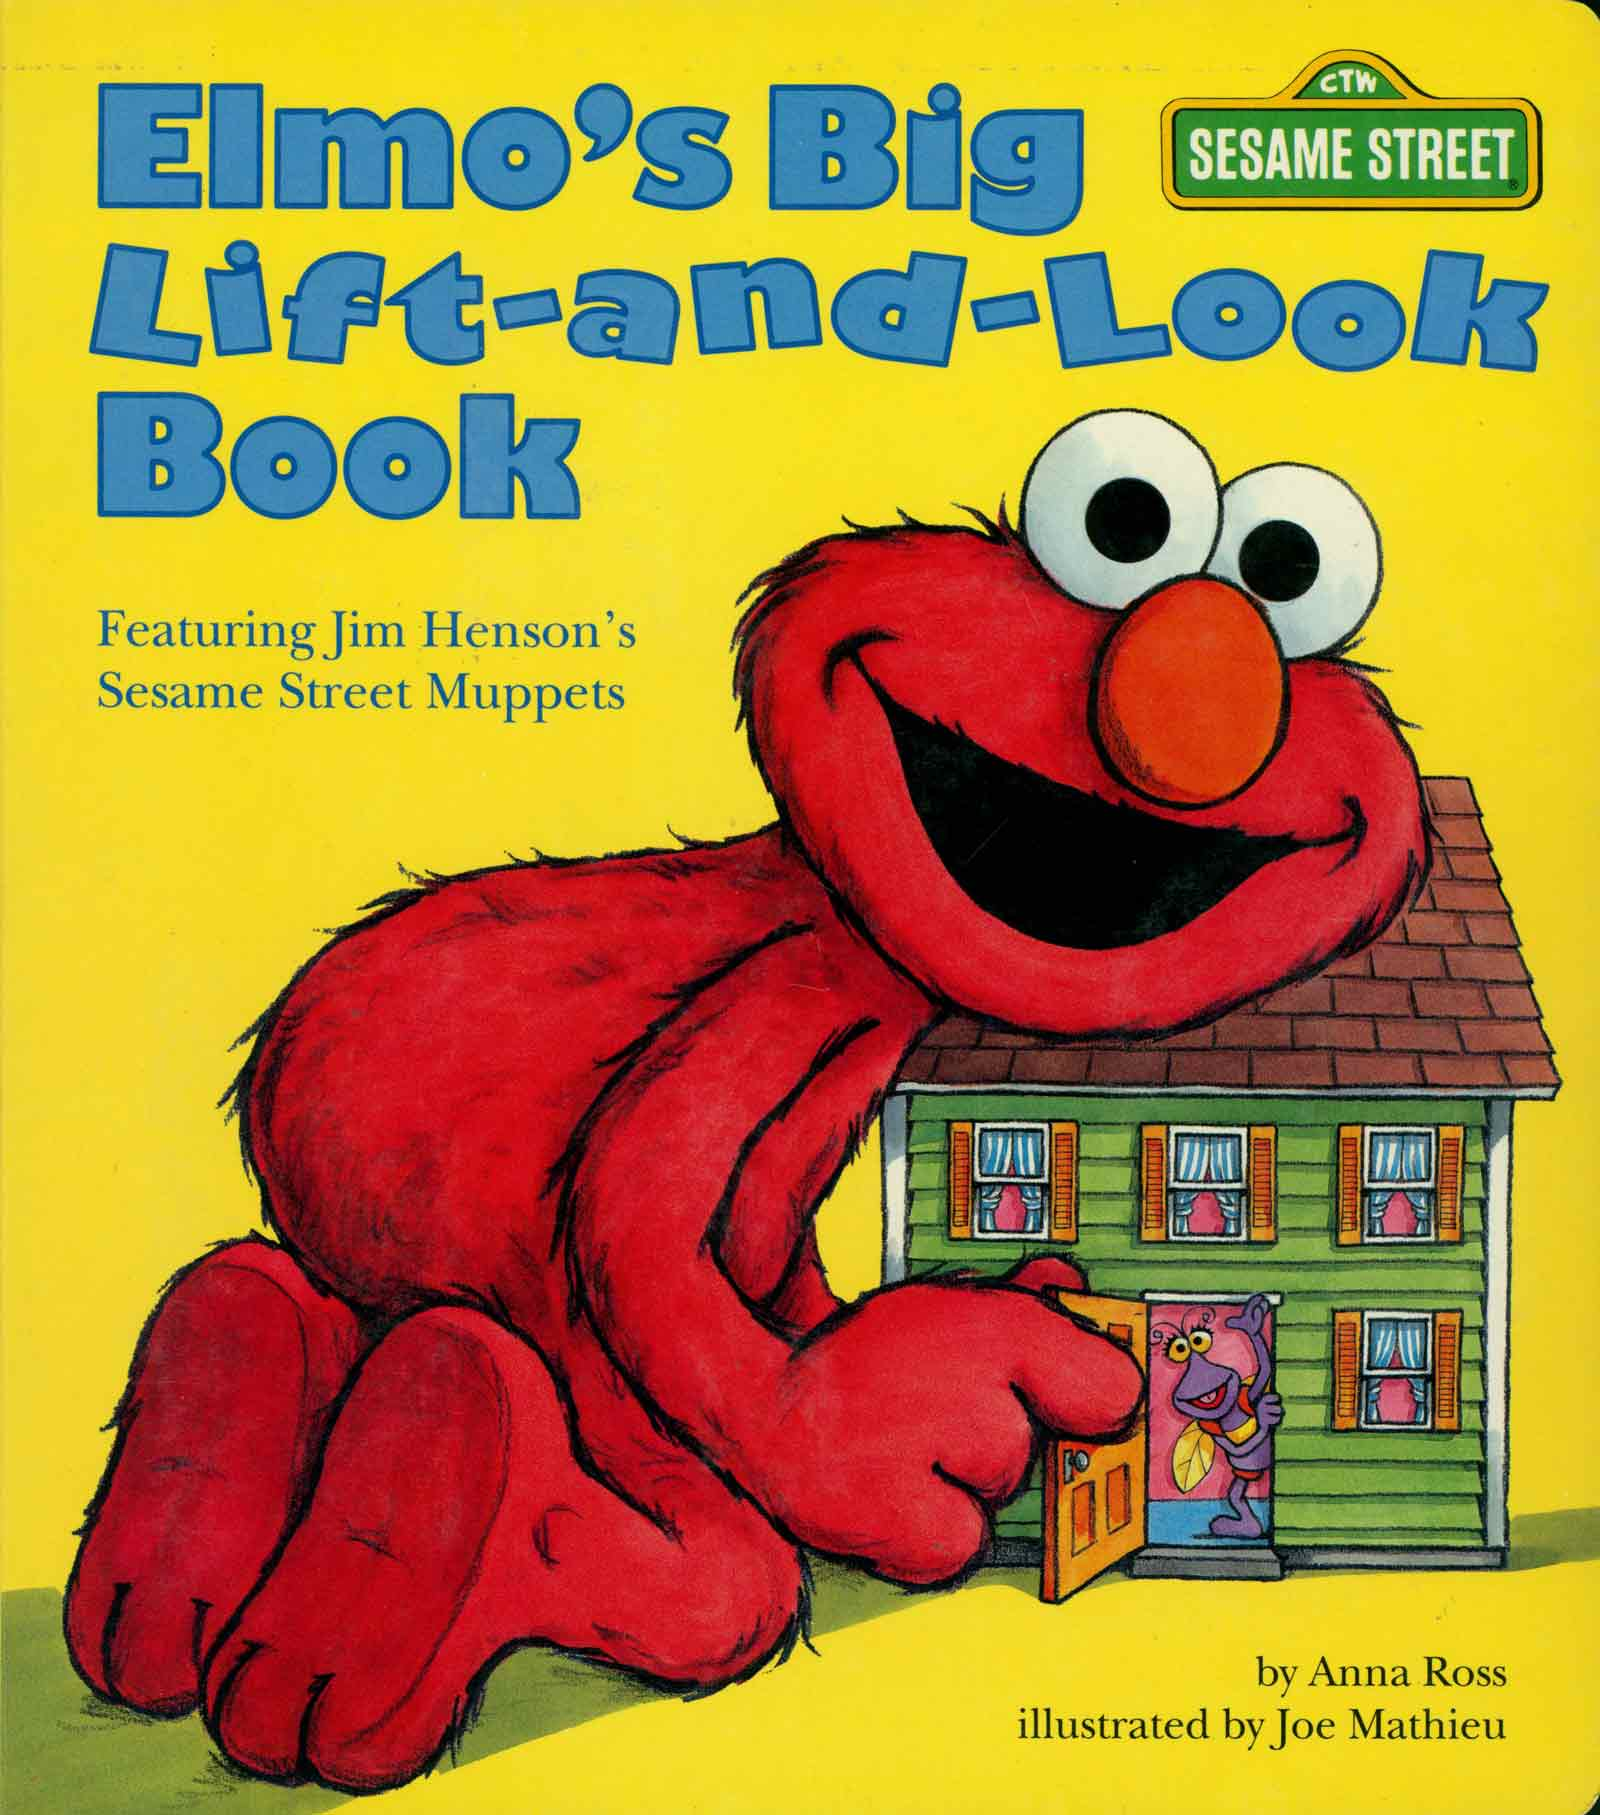 Elmo's Big Lift and Look Book